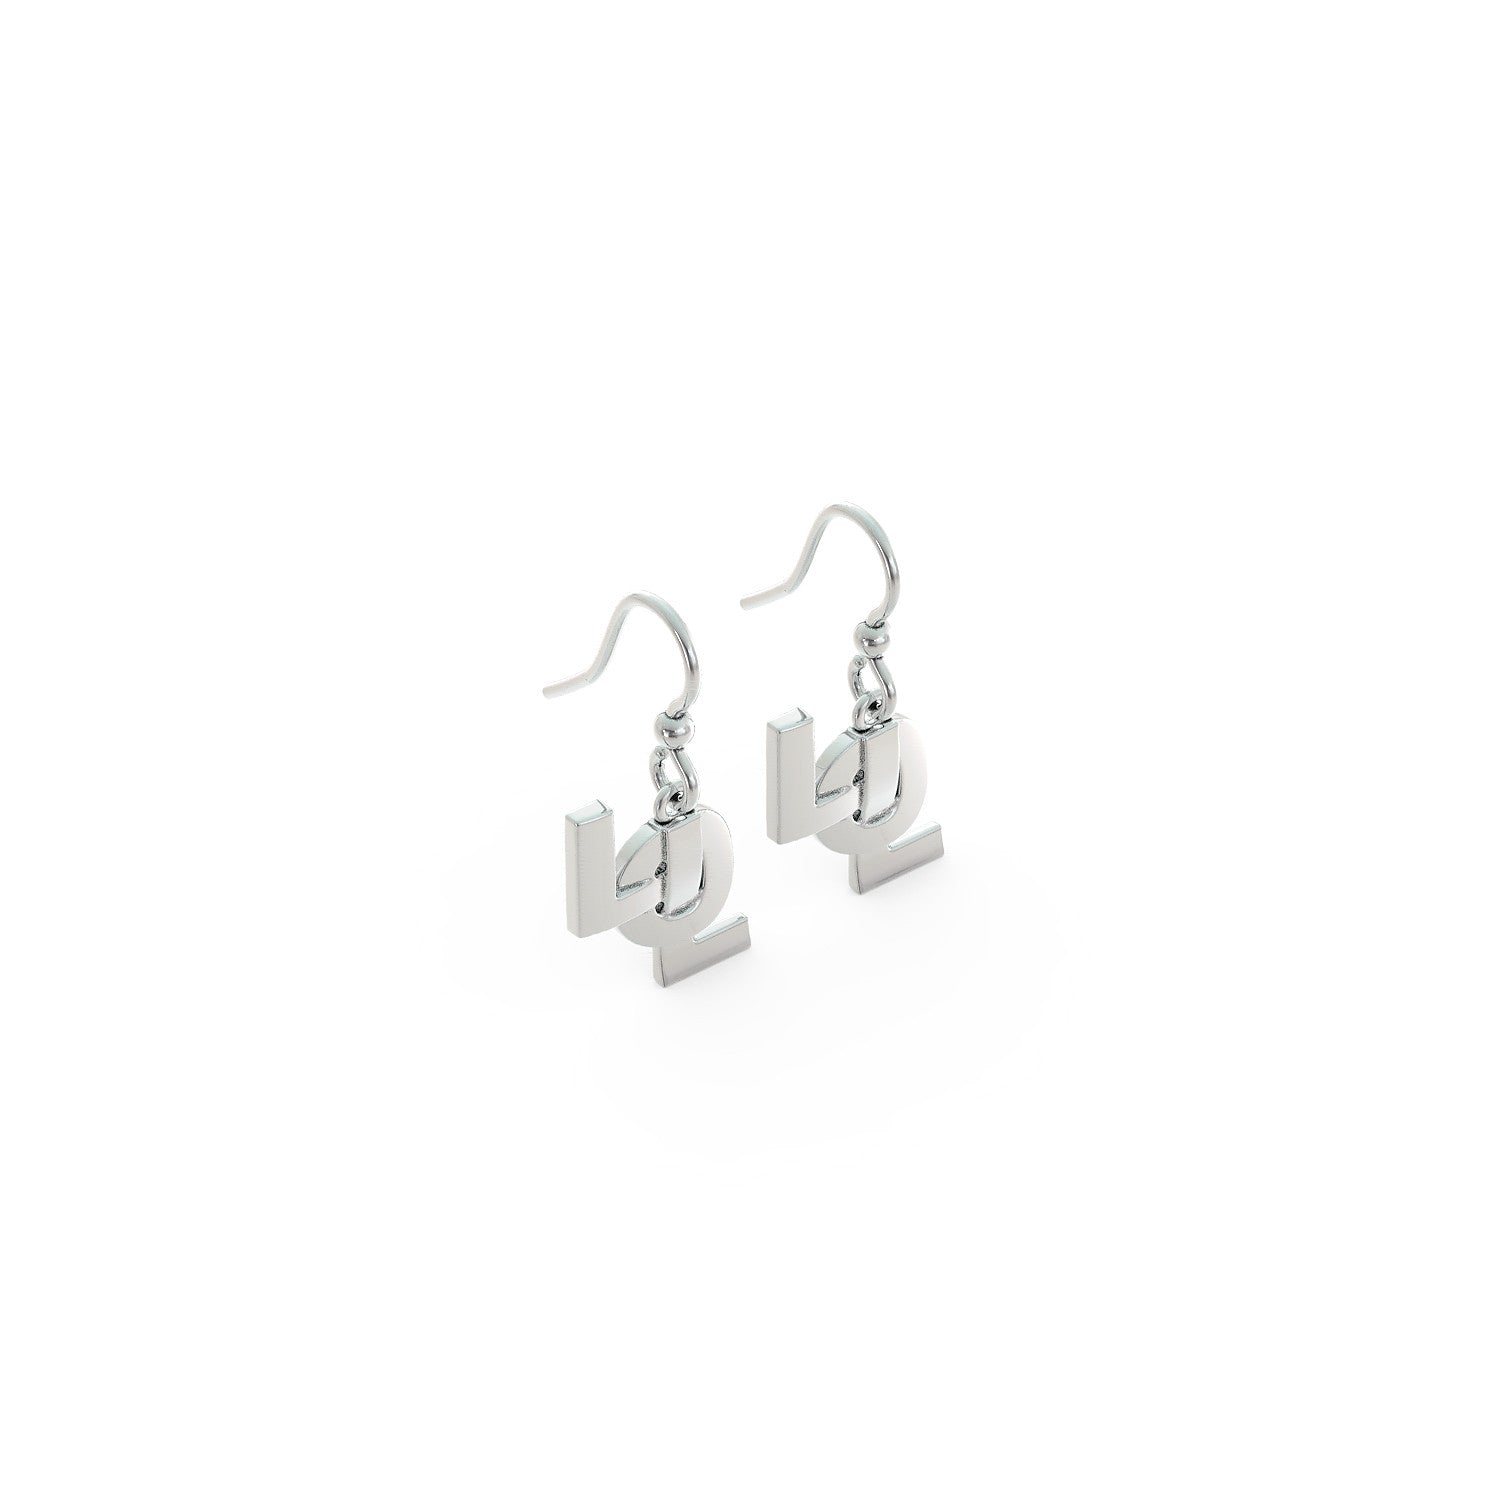 L.O.L. Earrings